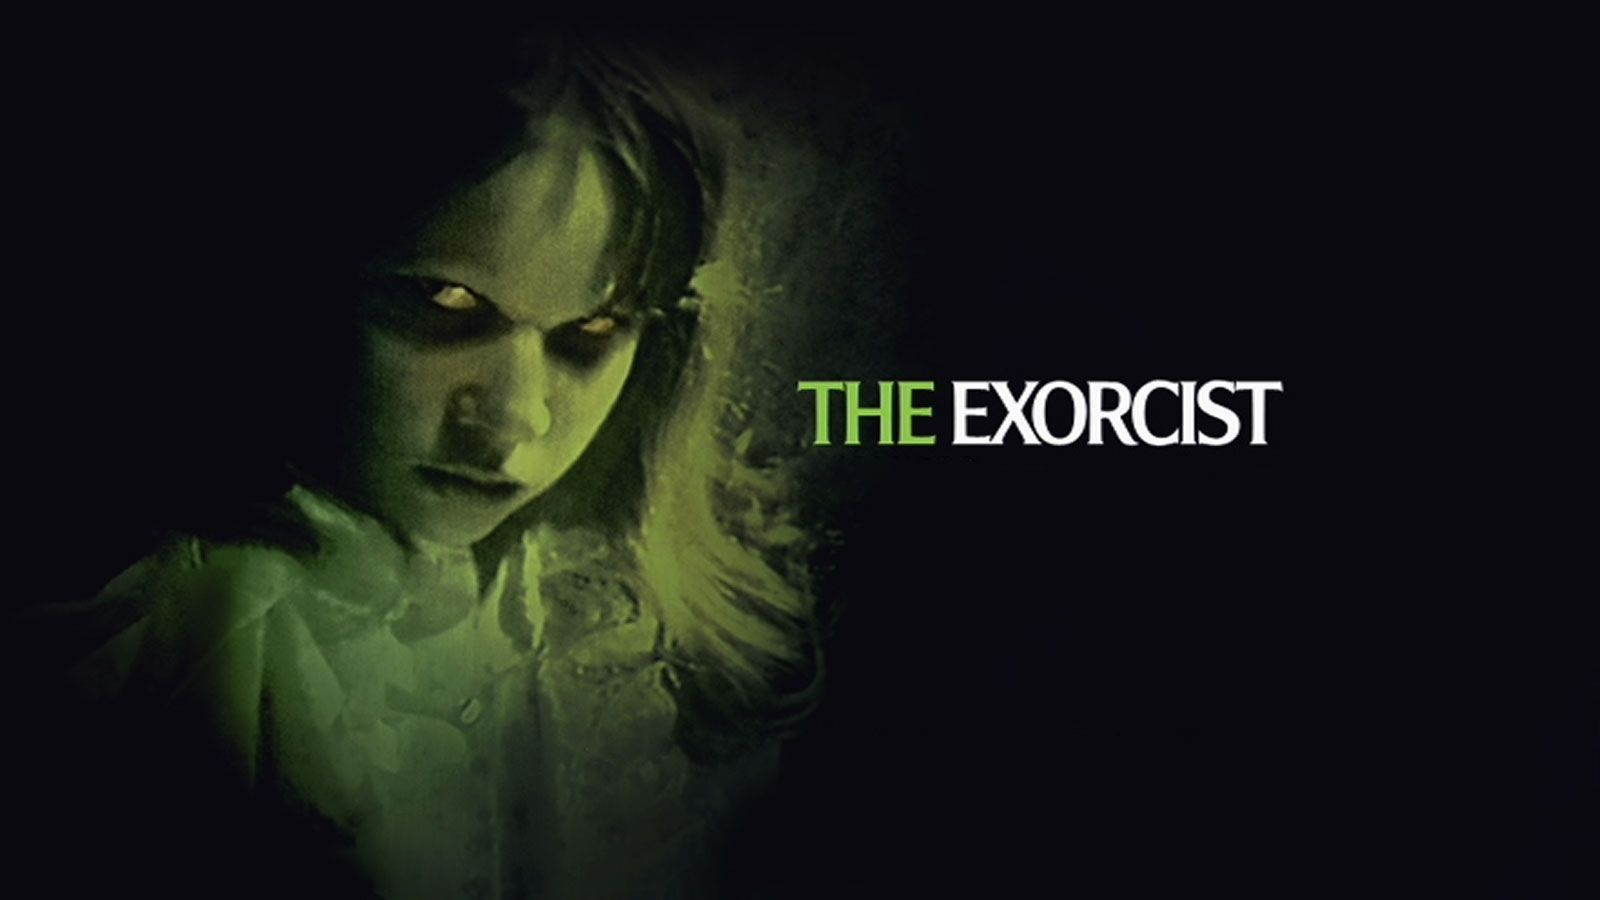 The Exorcist Wallpapers Wallpaper Cave En 2019